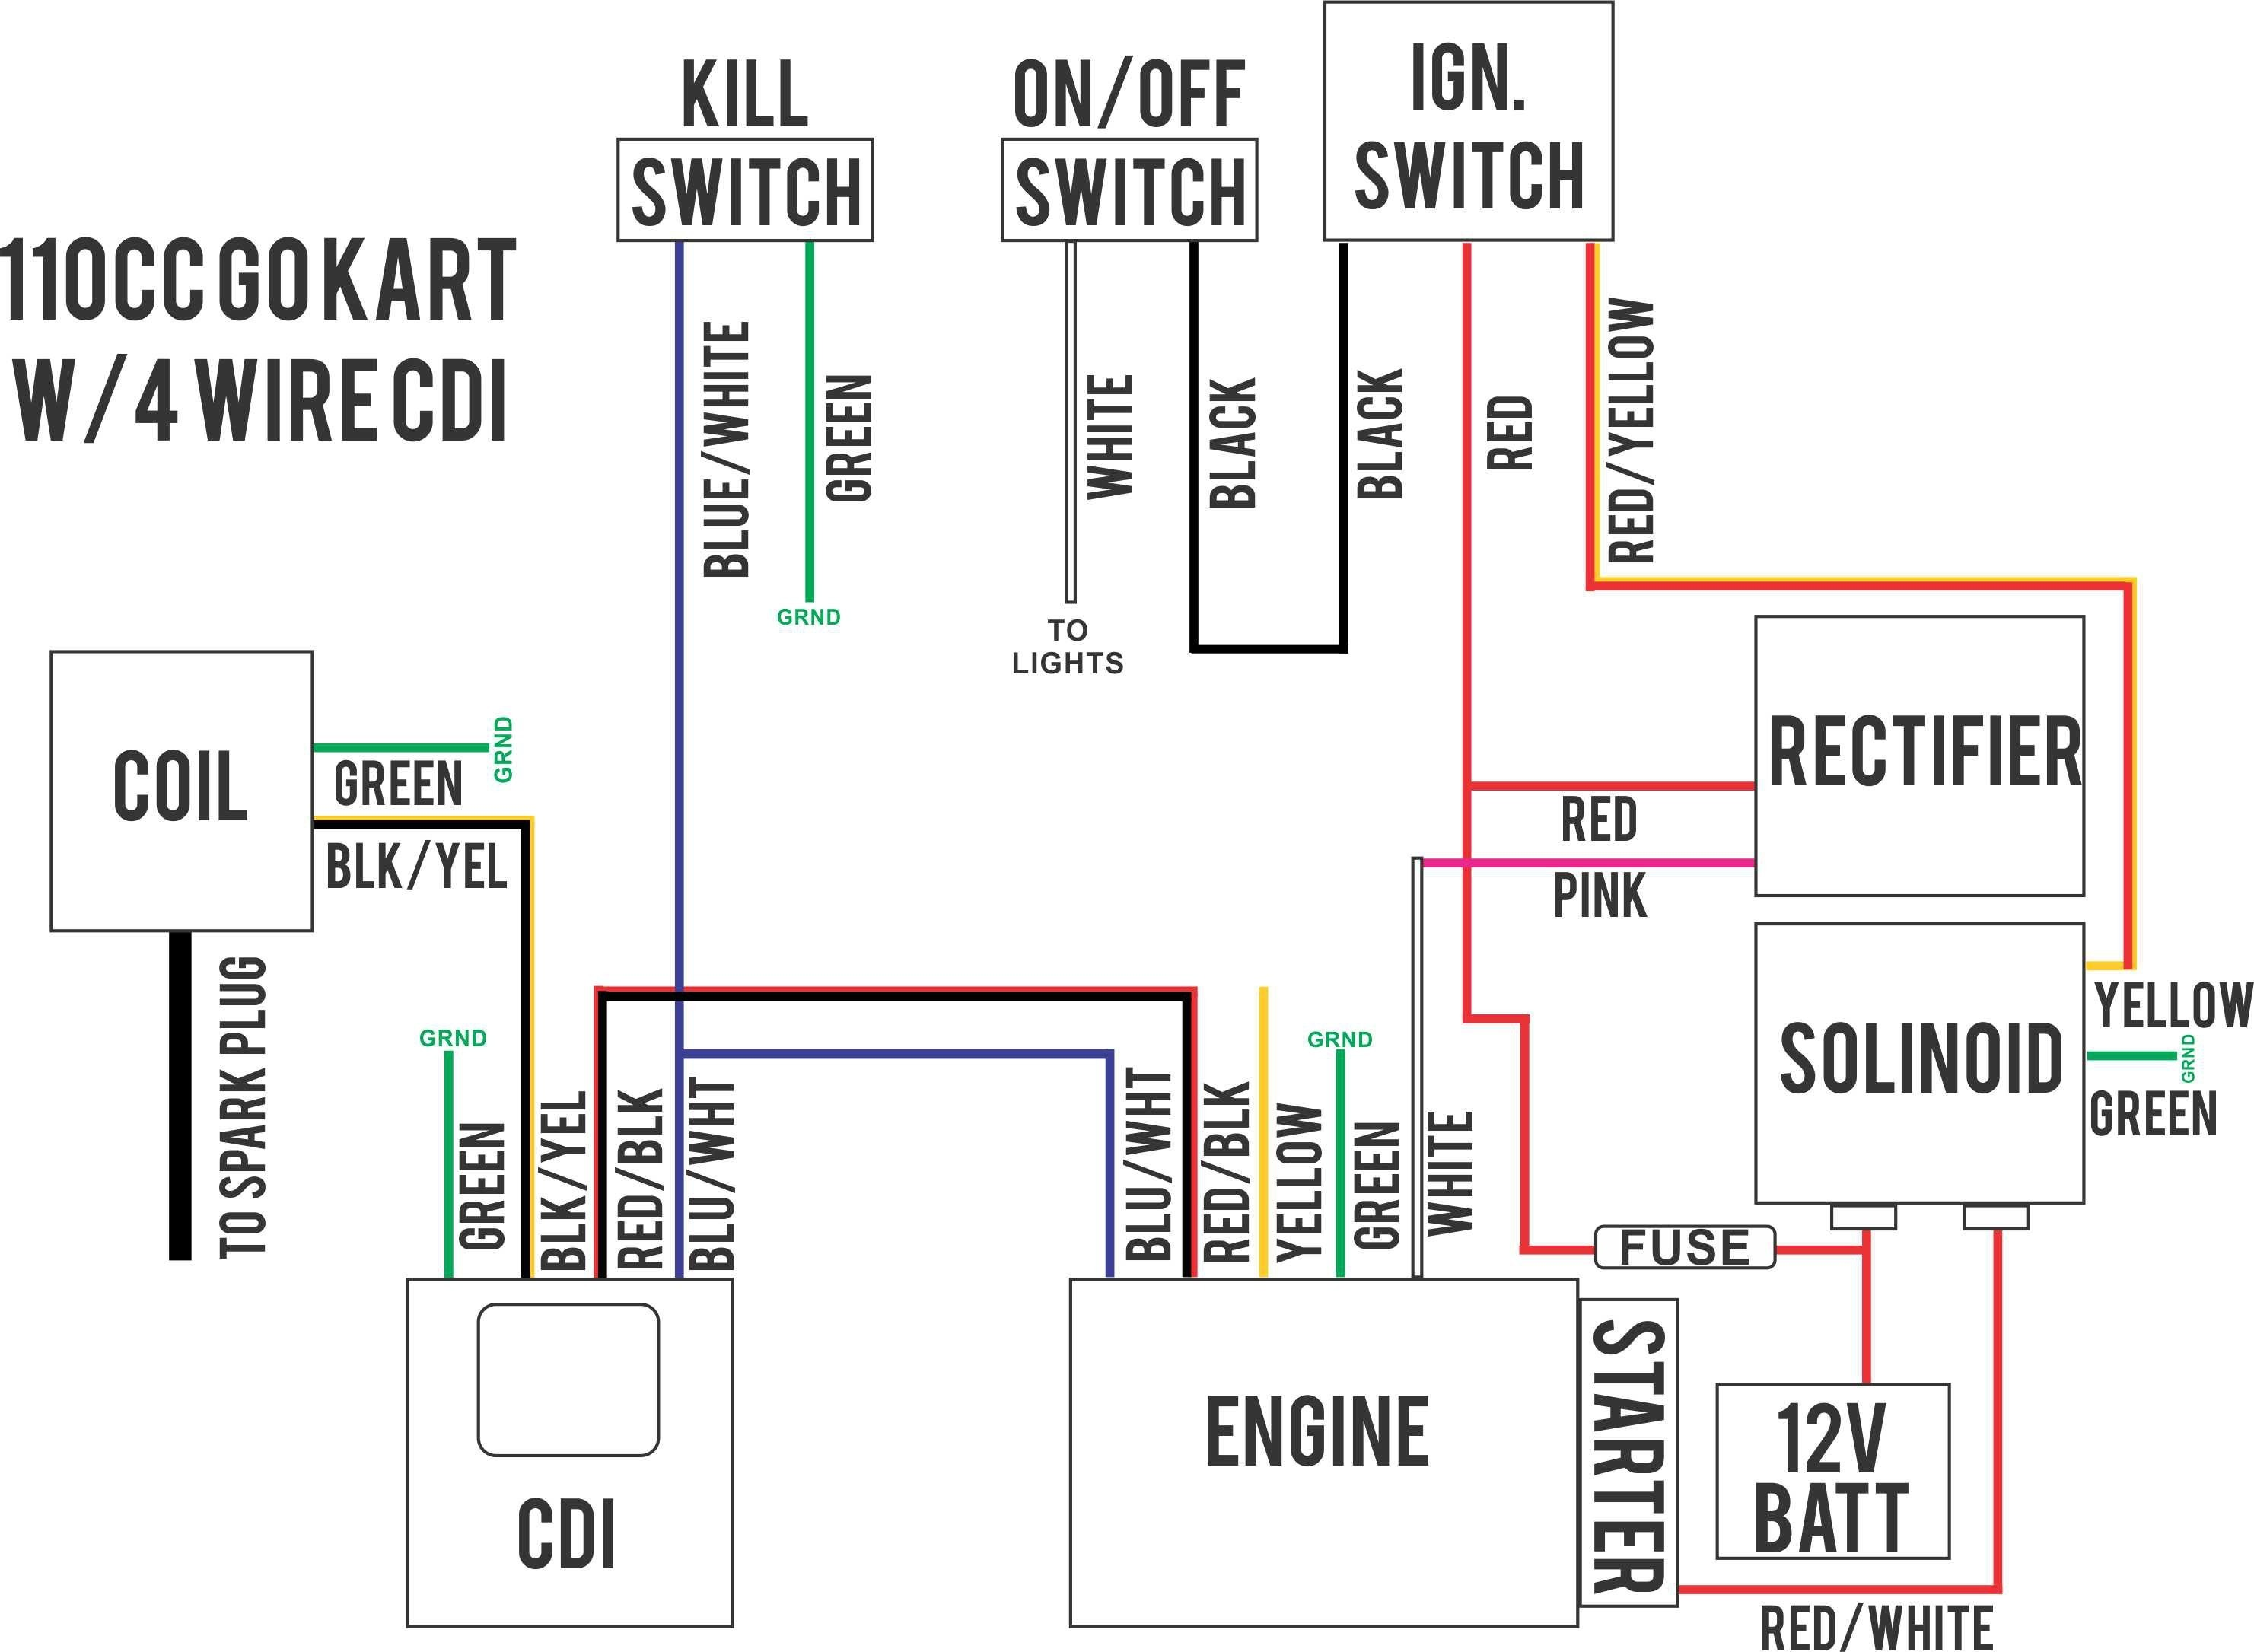 Simple Chopper Wiring Diagram Basic Ignition Wiring Diagram Of Simple Chopper Wiring Diagram